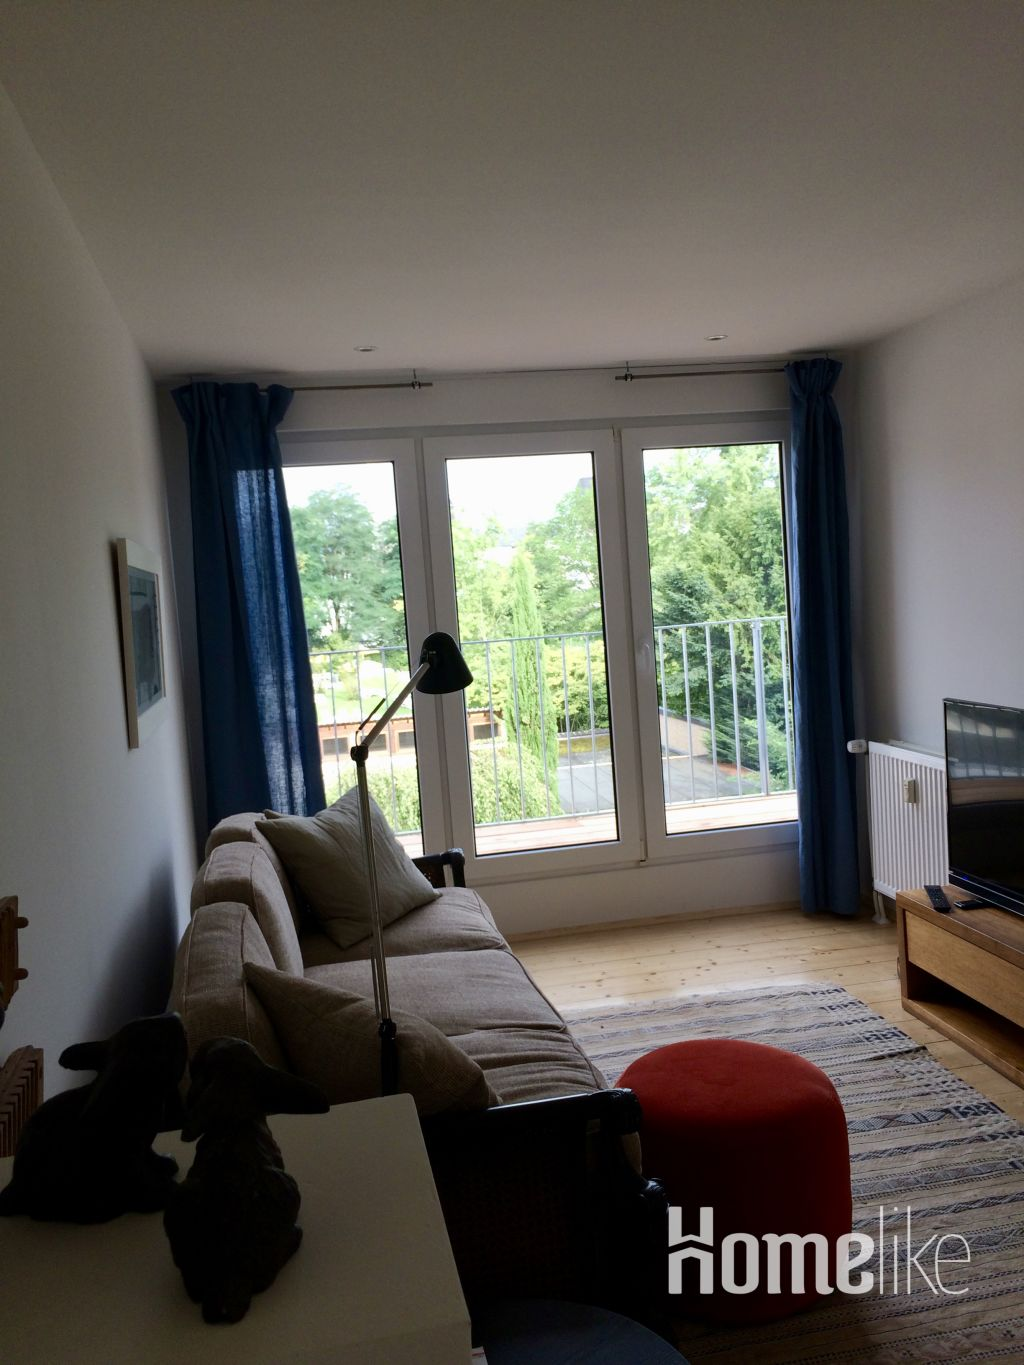 image 9 furnished 1 bedroom Apartment for rent in Bad Neuenahr-Ahrweiler, Ahrweiler